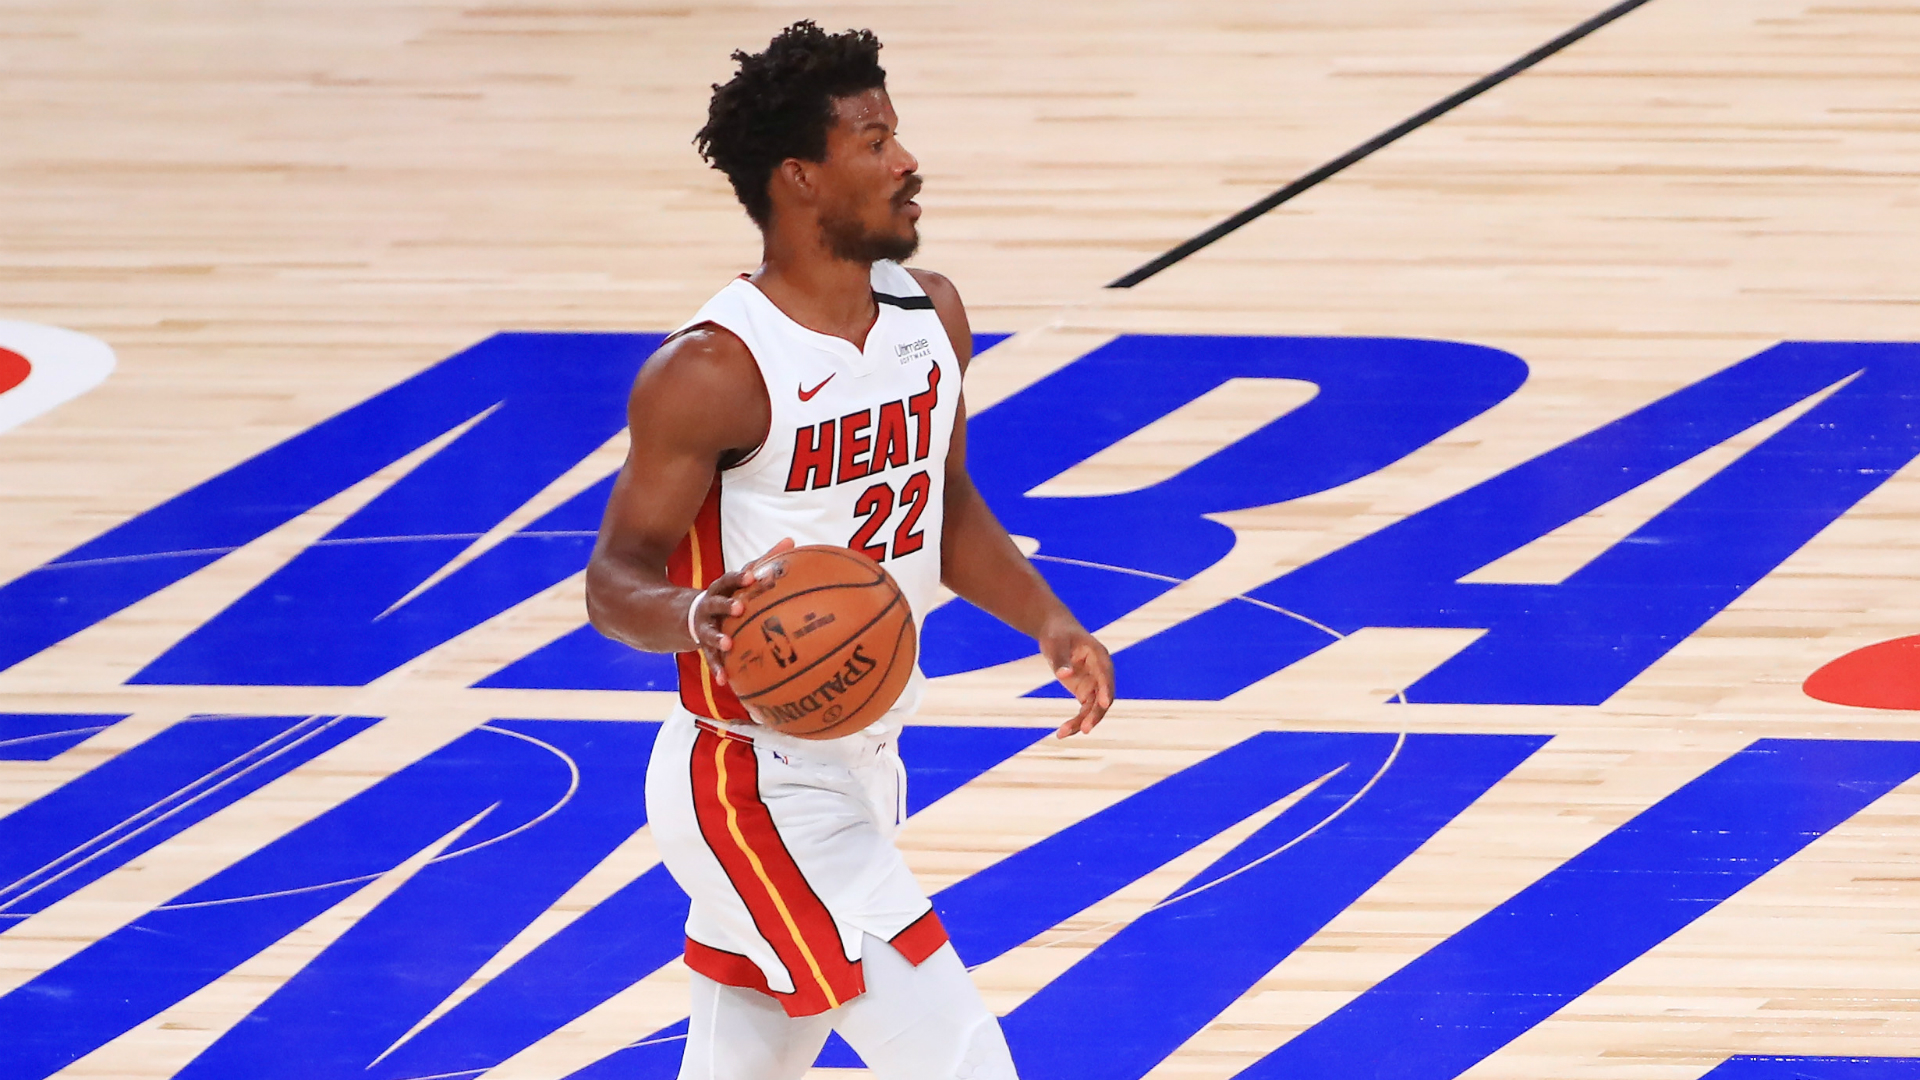 Heat's Jimmy Butler on dominating performance vs. Lakers: 'I left it all out there' 1